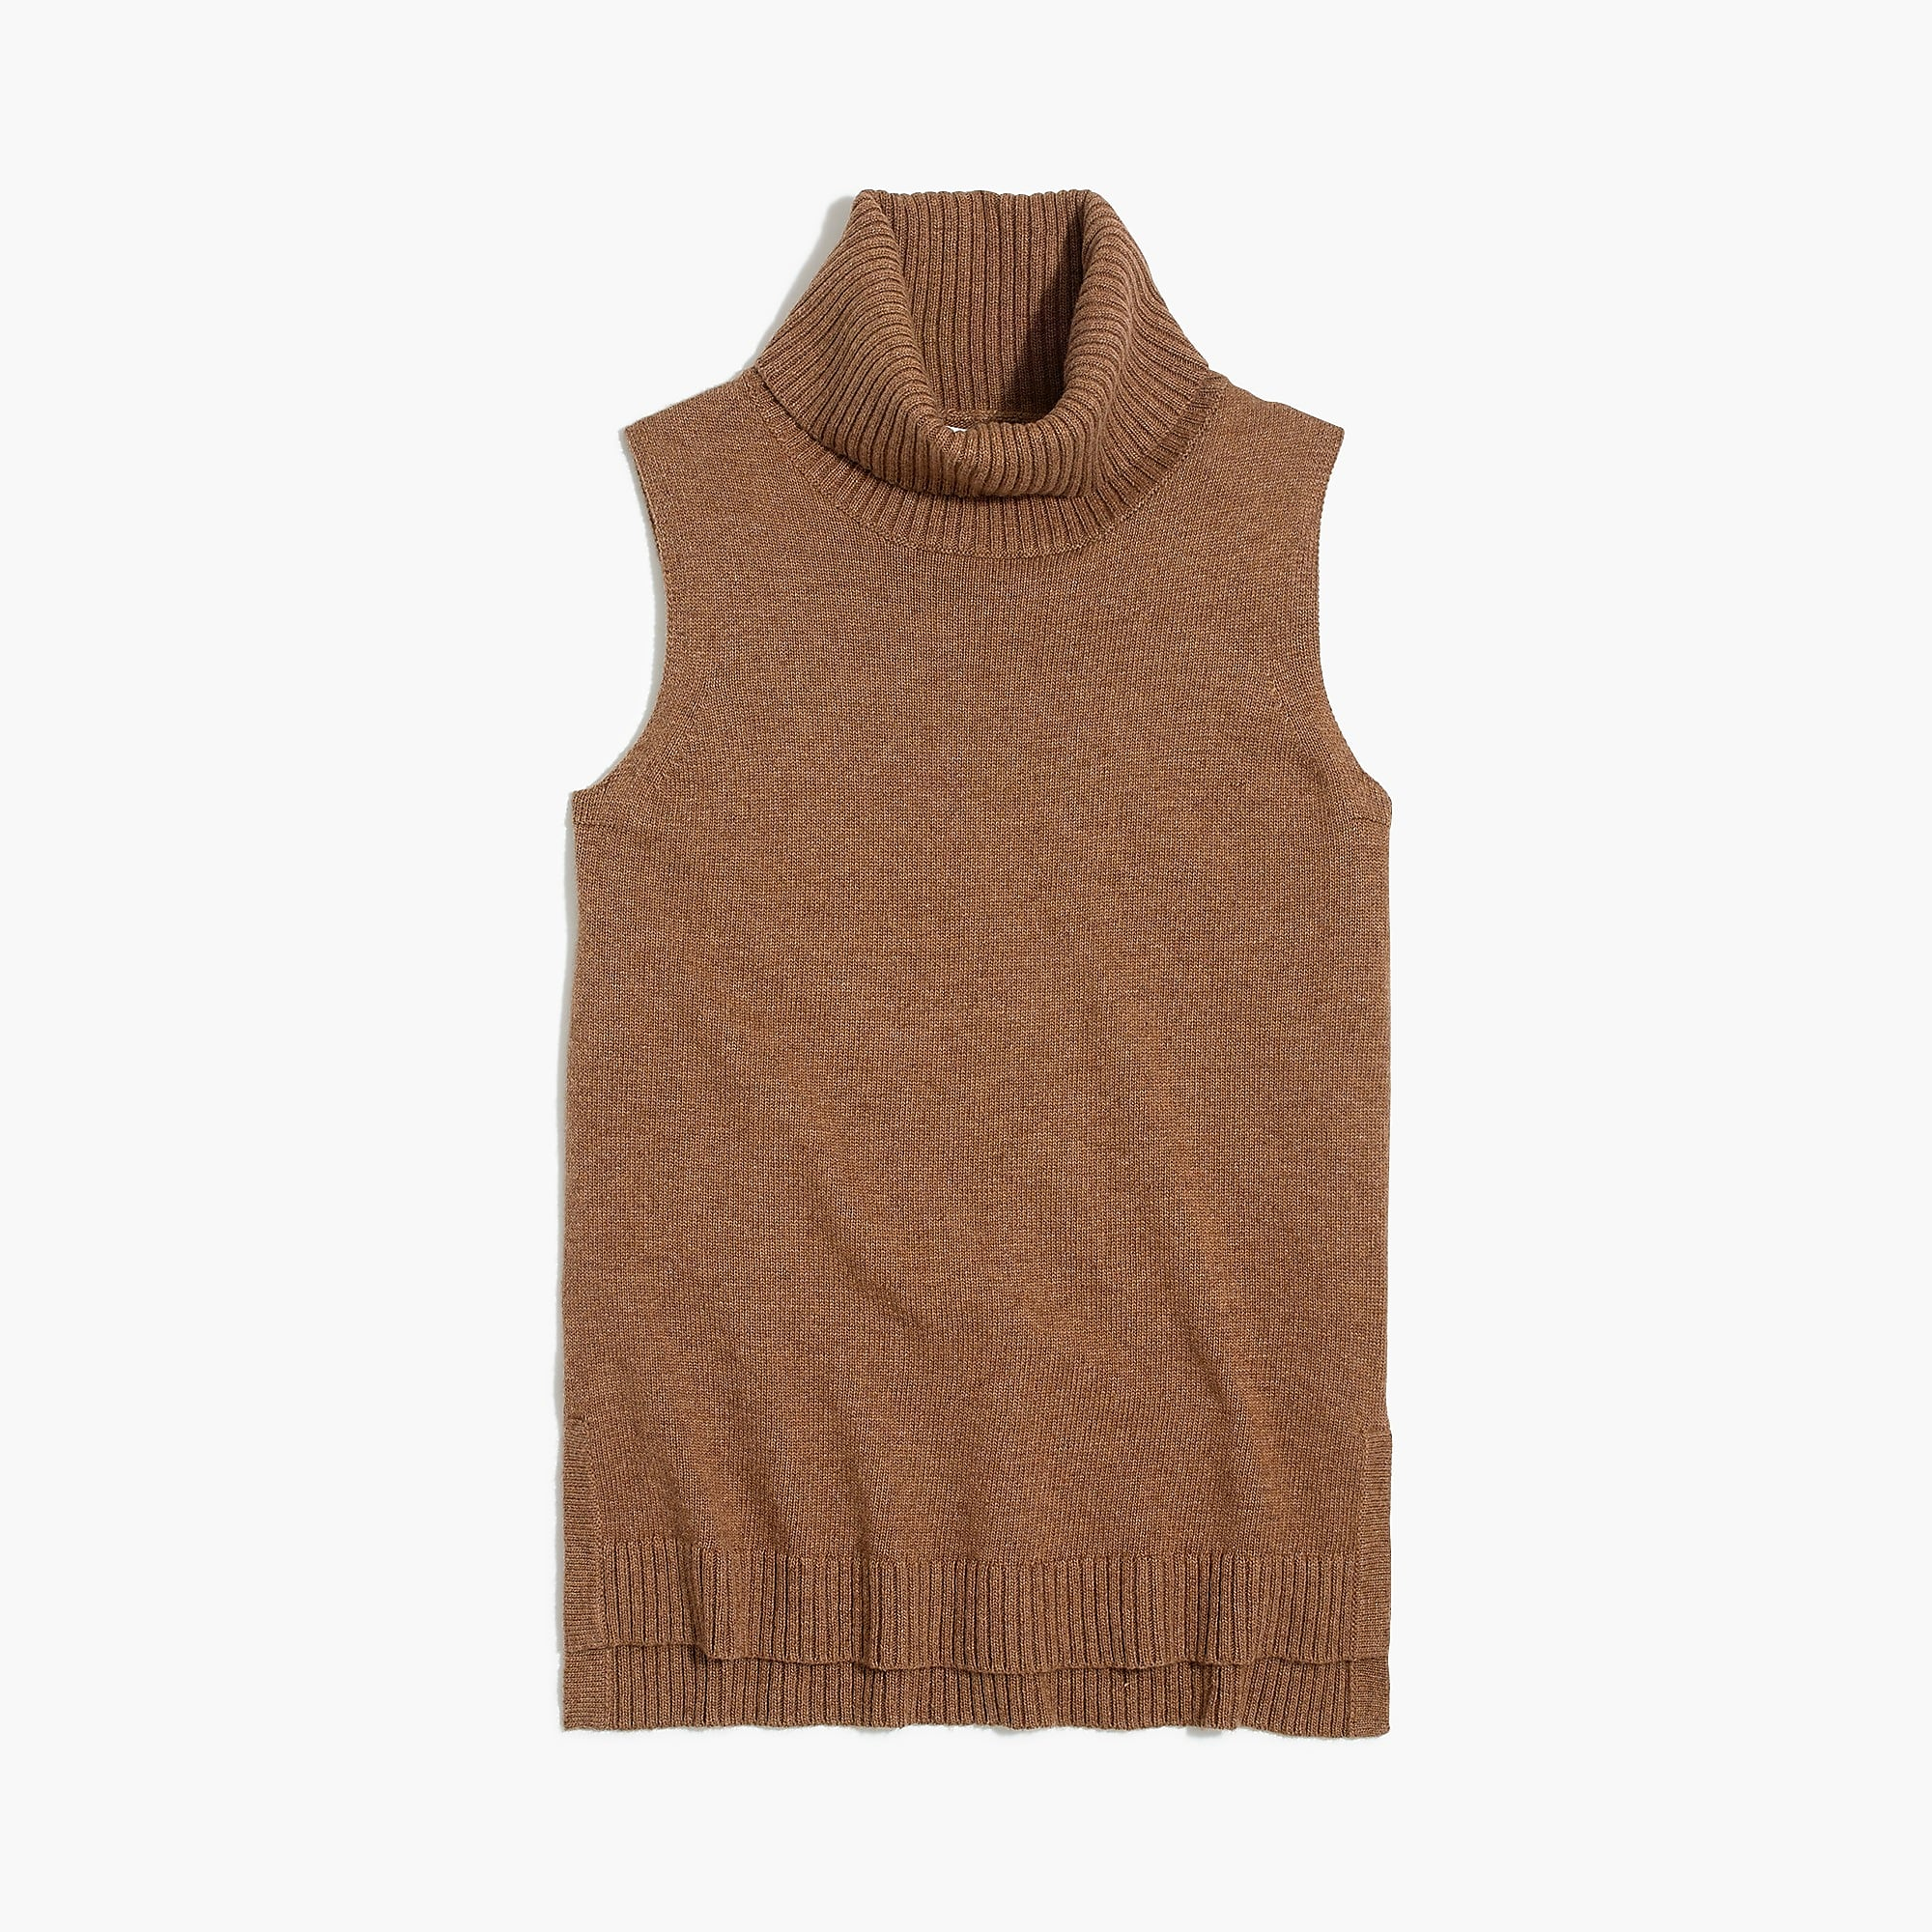 J.Crew Factory: Turtleneck sweater-tank